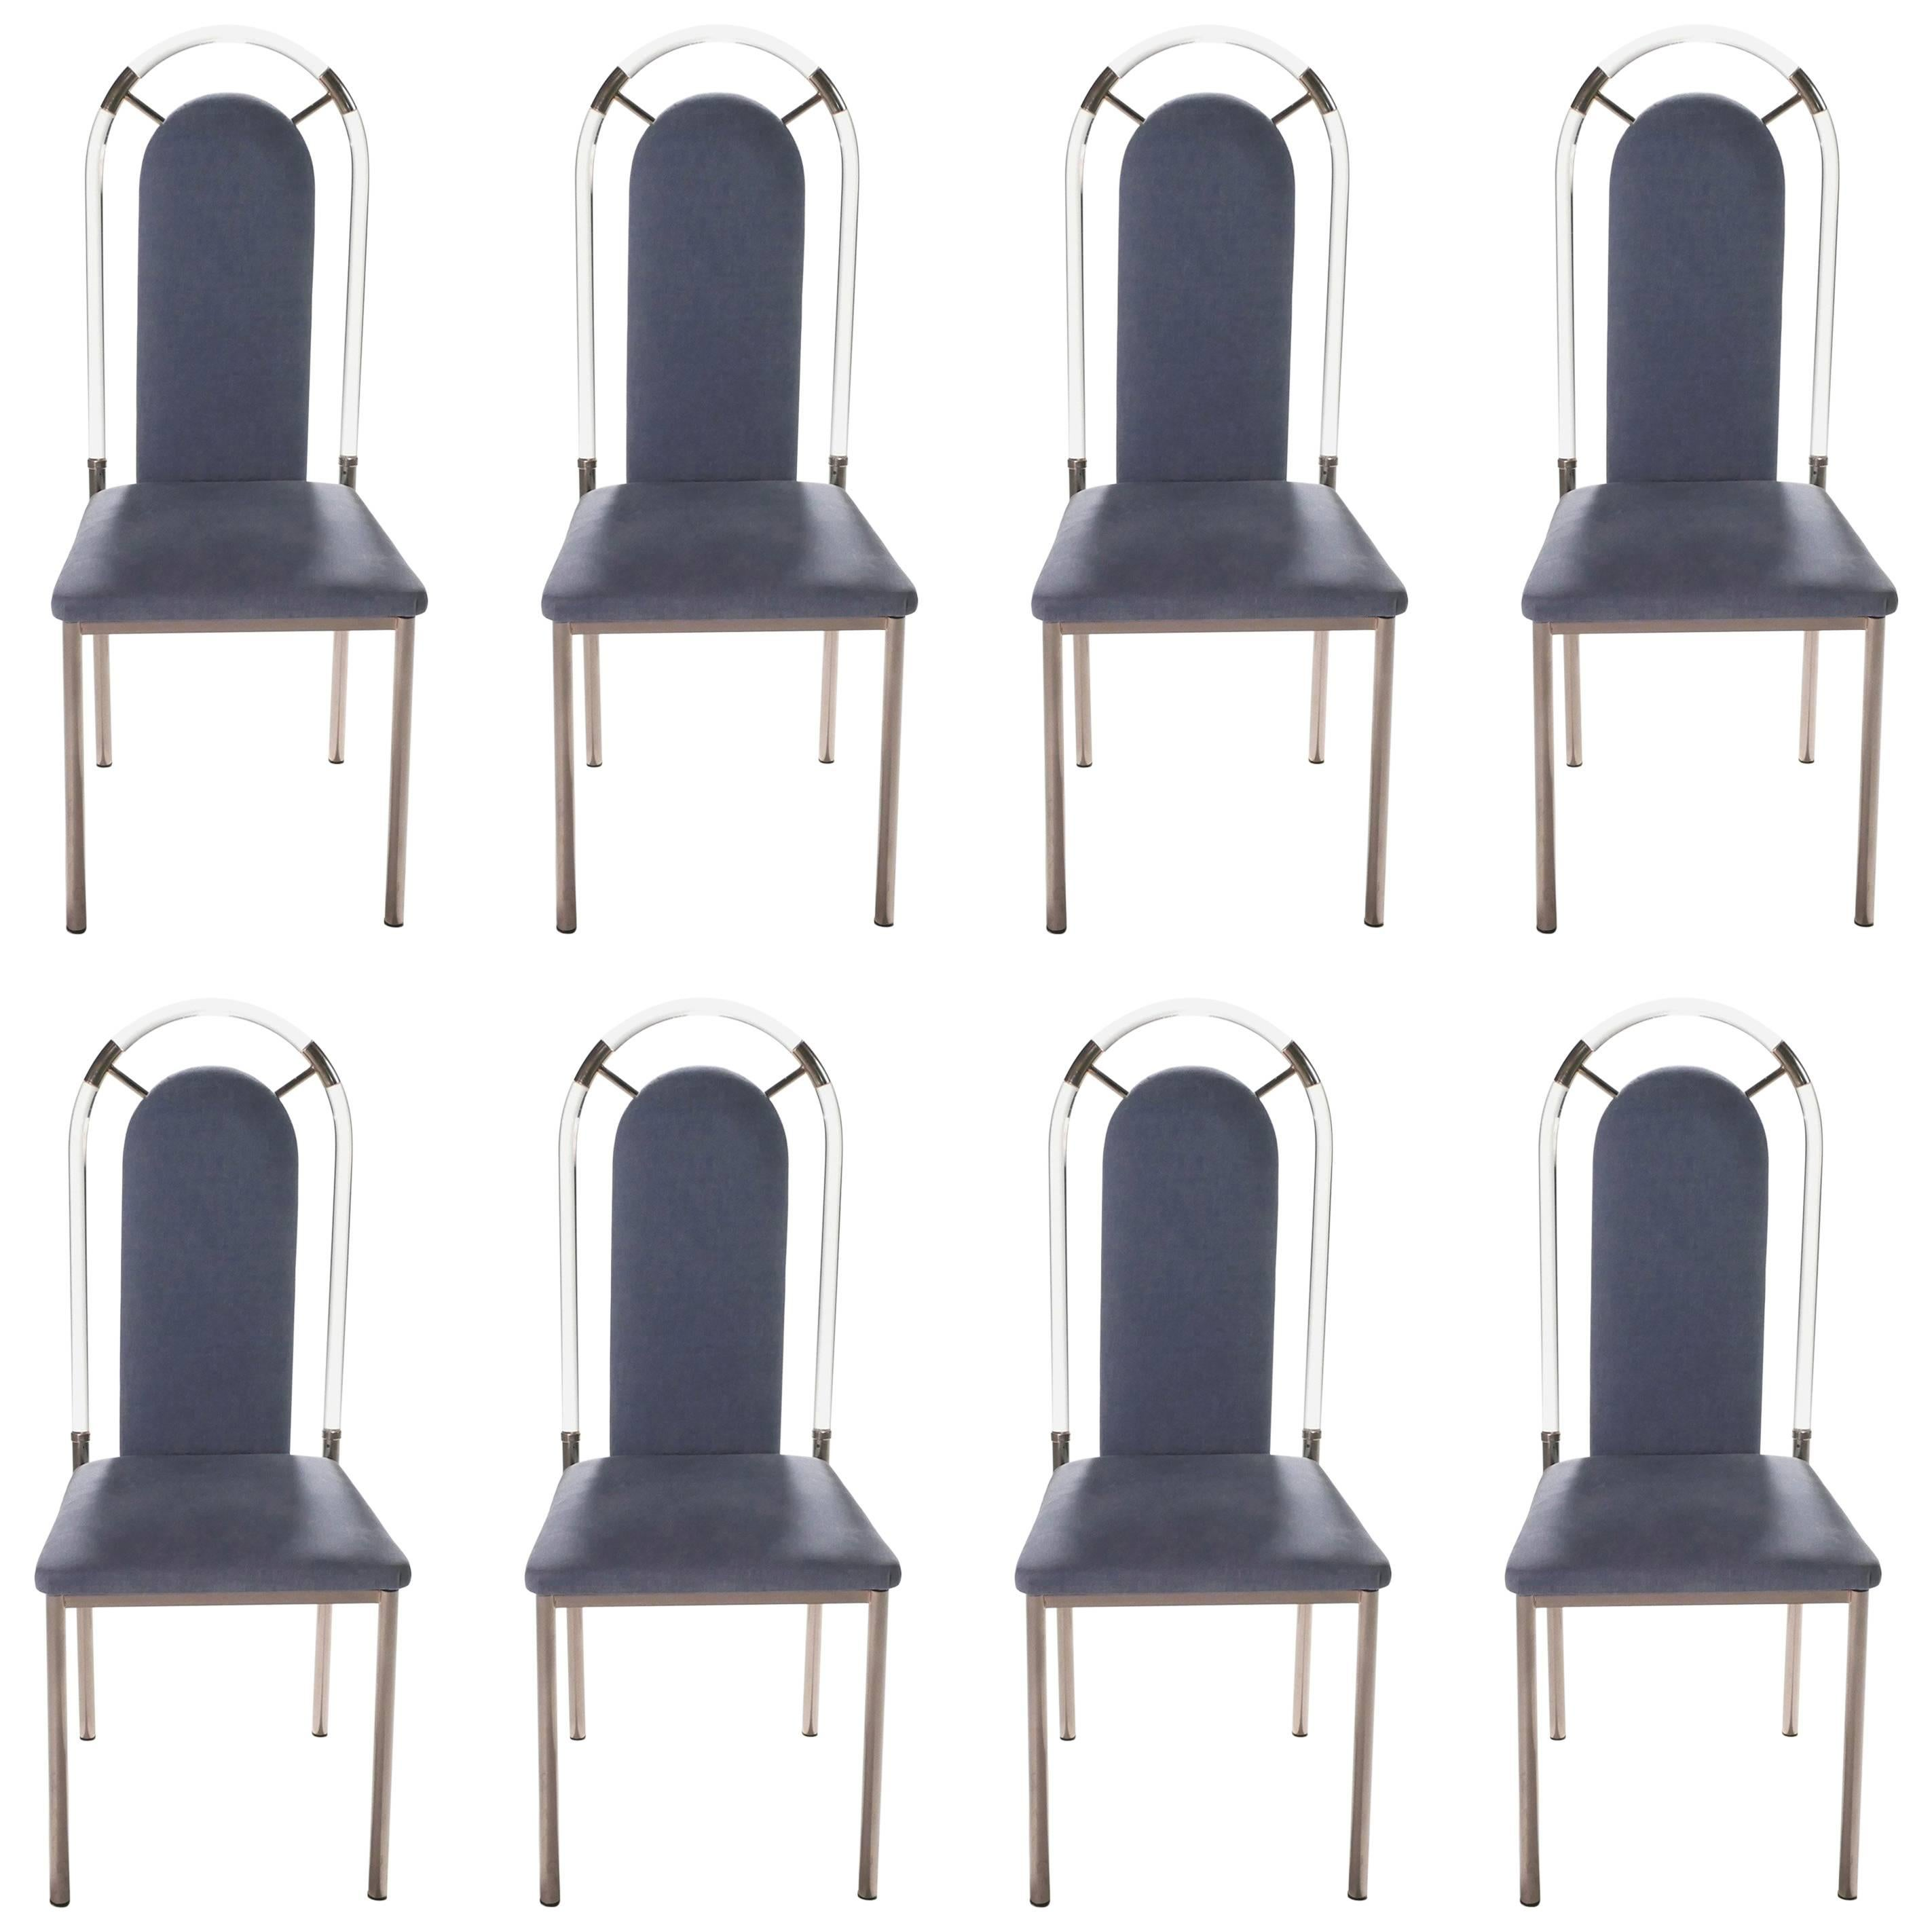 Plexiglass Chairs Set Of Eight Chairs Plexiglass And Gunmetal By Maison Jansen 1970s